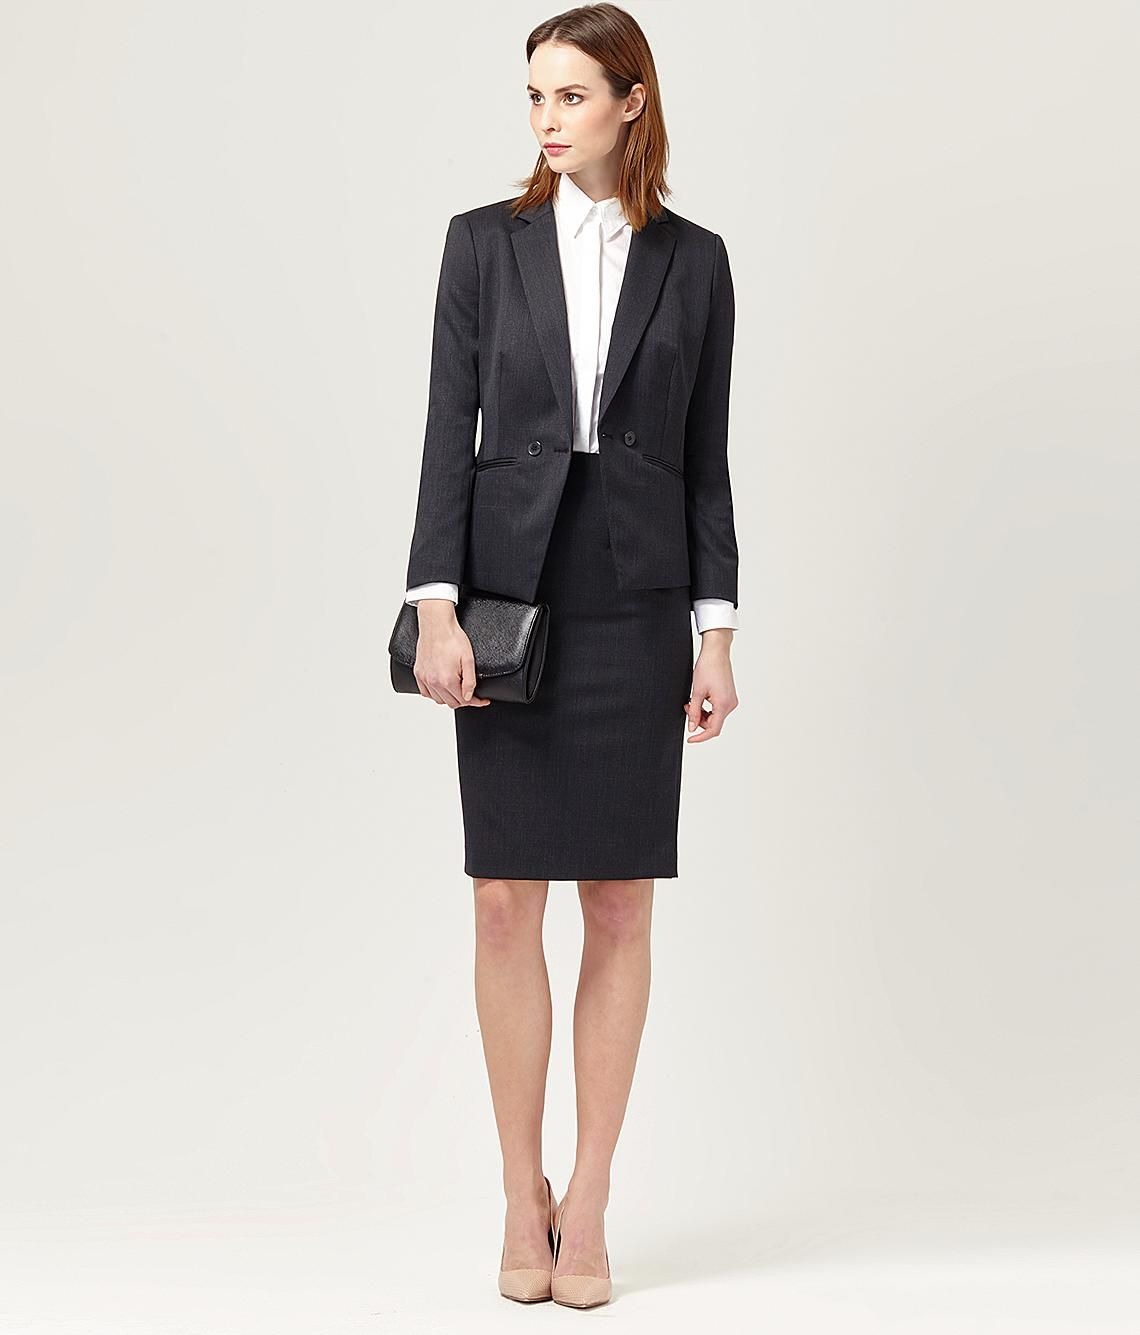 Prince Of Wales Check Skirt Suit Women S Suits Austin Reed Classic Skirts Skirt Suit Suits For Women